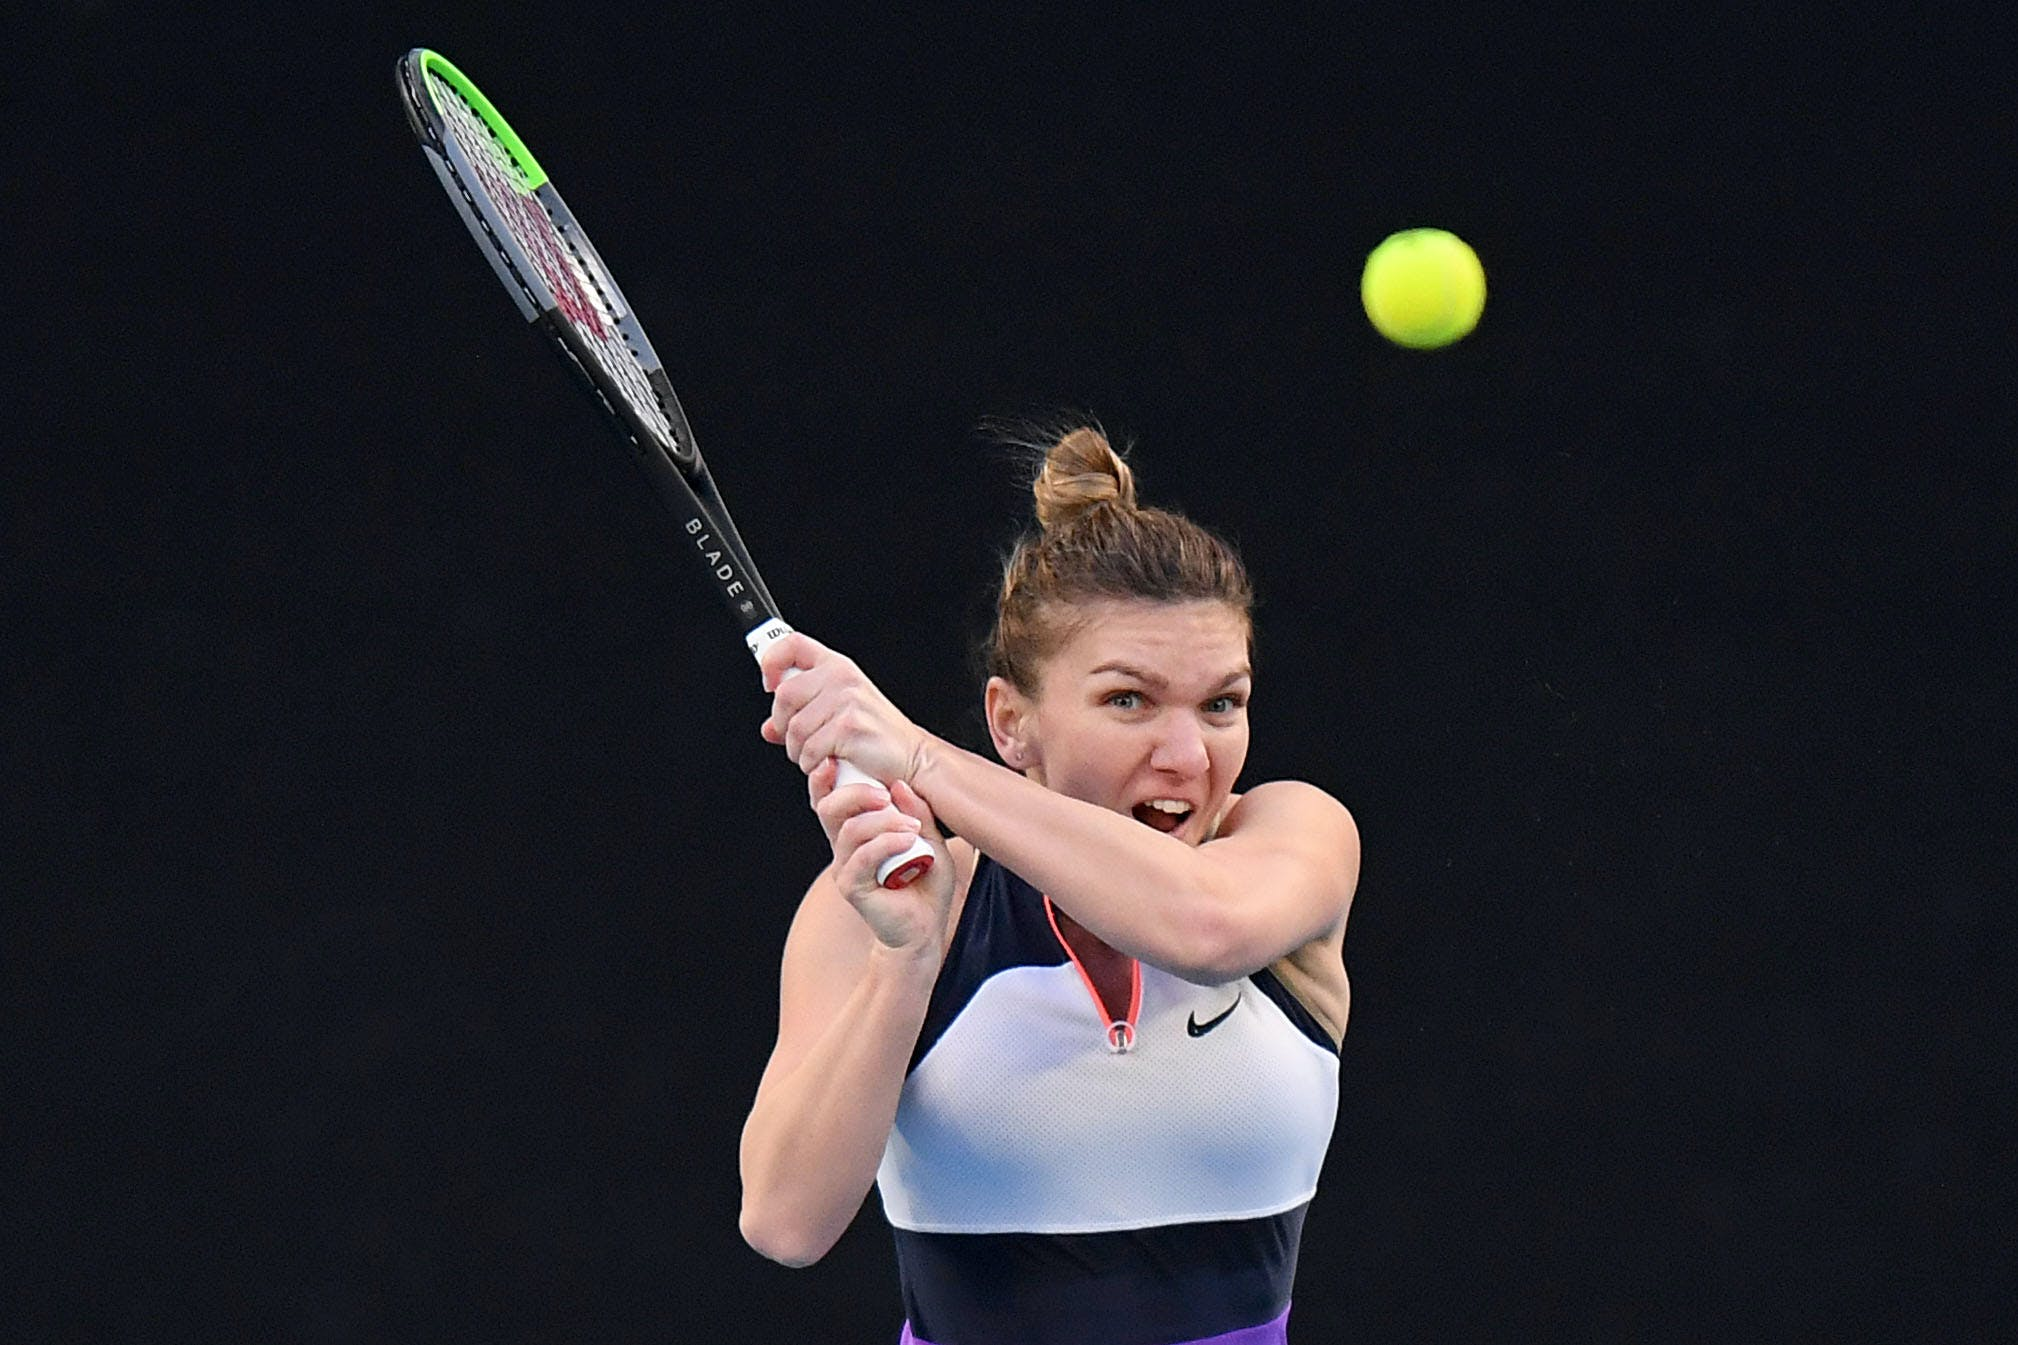 Simona Halep during her match against Iga Swiatek Melbourne 2021